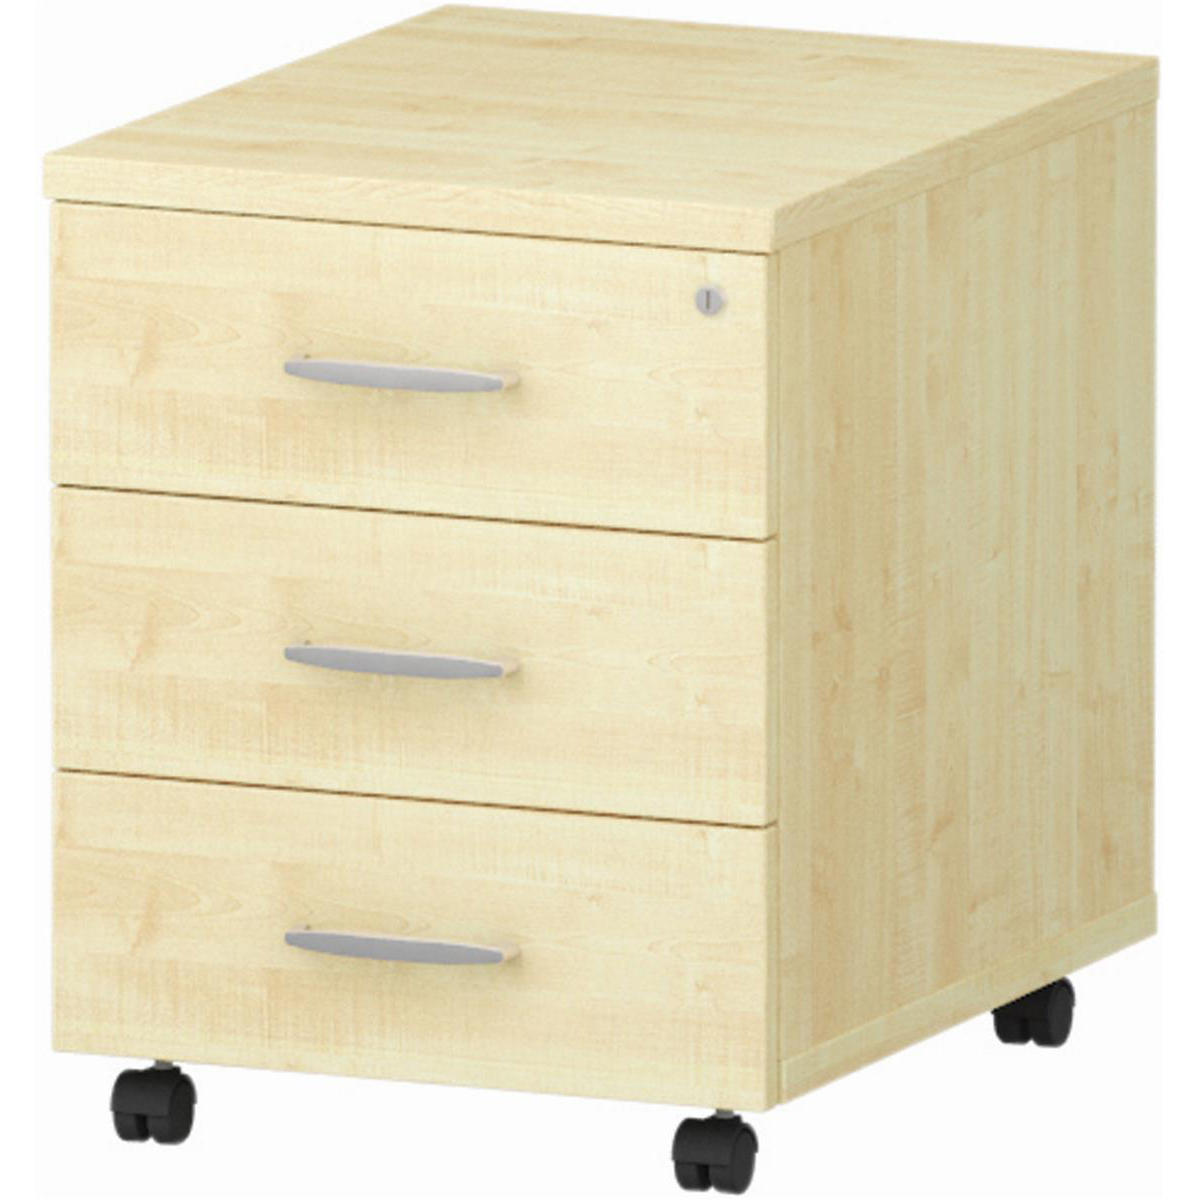 Image for Trexus 3 Drawer Mobile Pedestal 430x500x510mm Maple Ref I000245